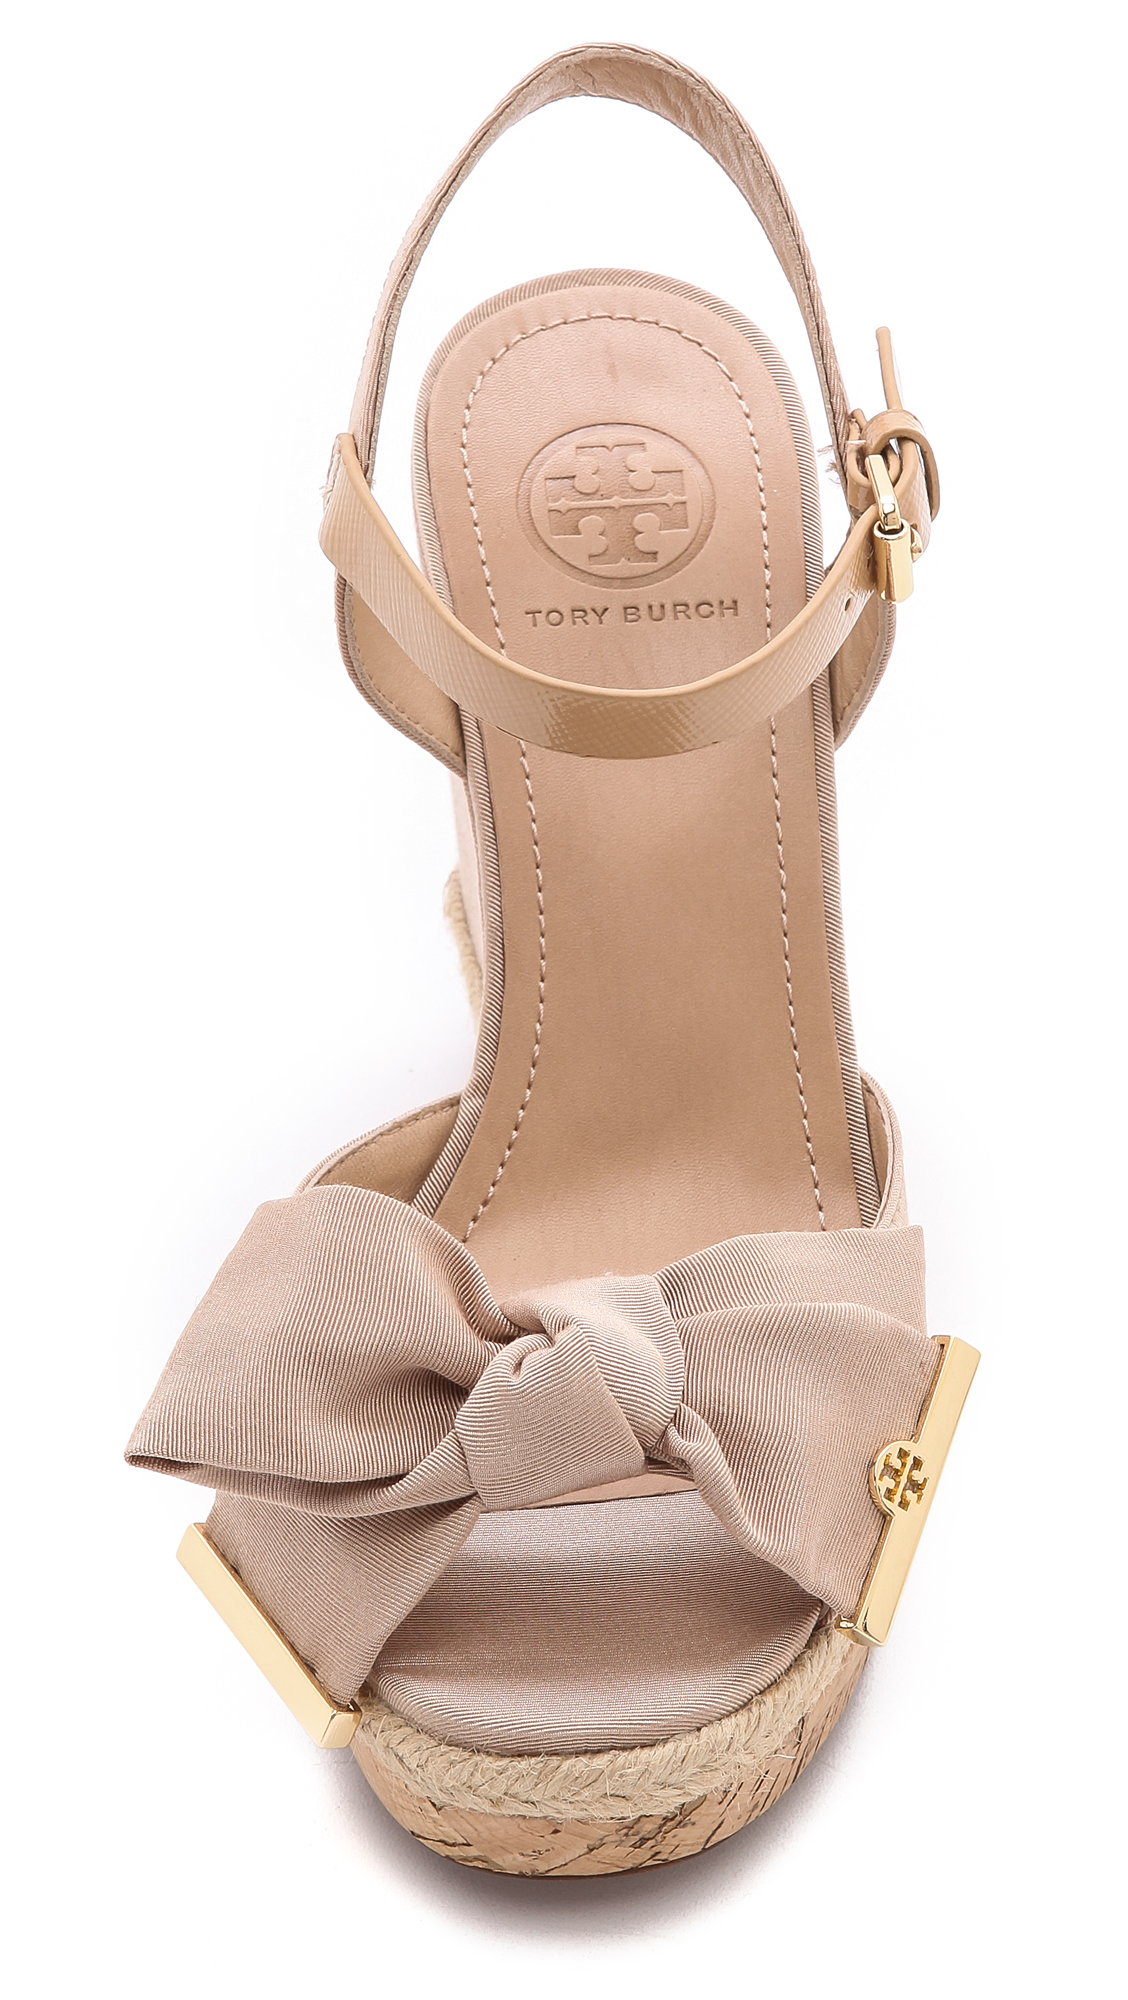 a0b3f39c598 Tory Burch Penny Wedge Sandals